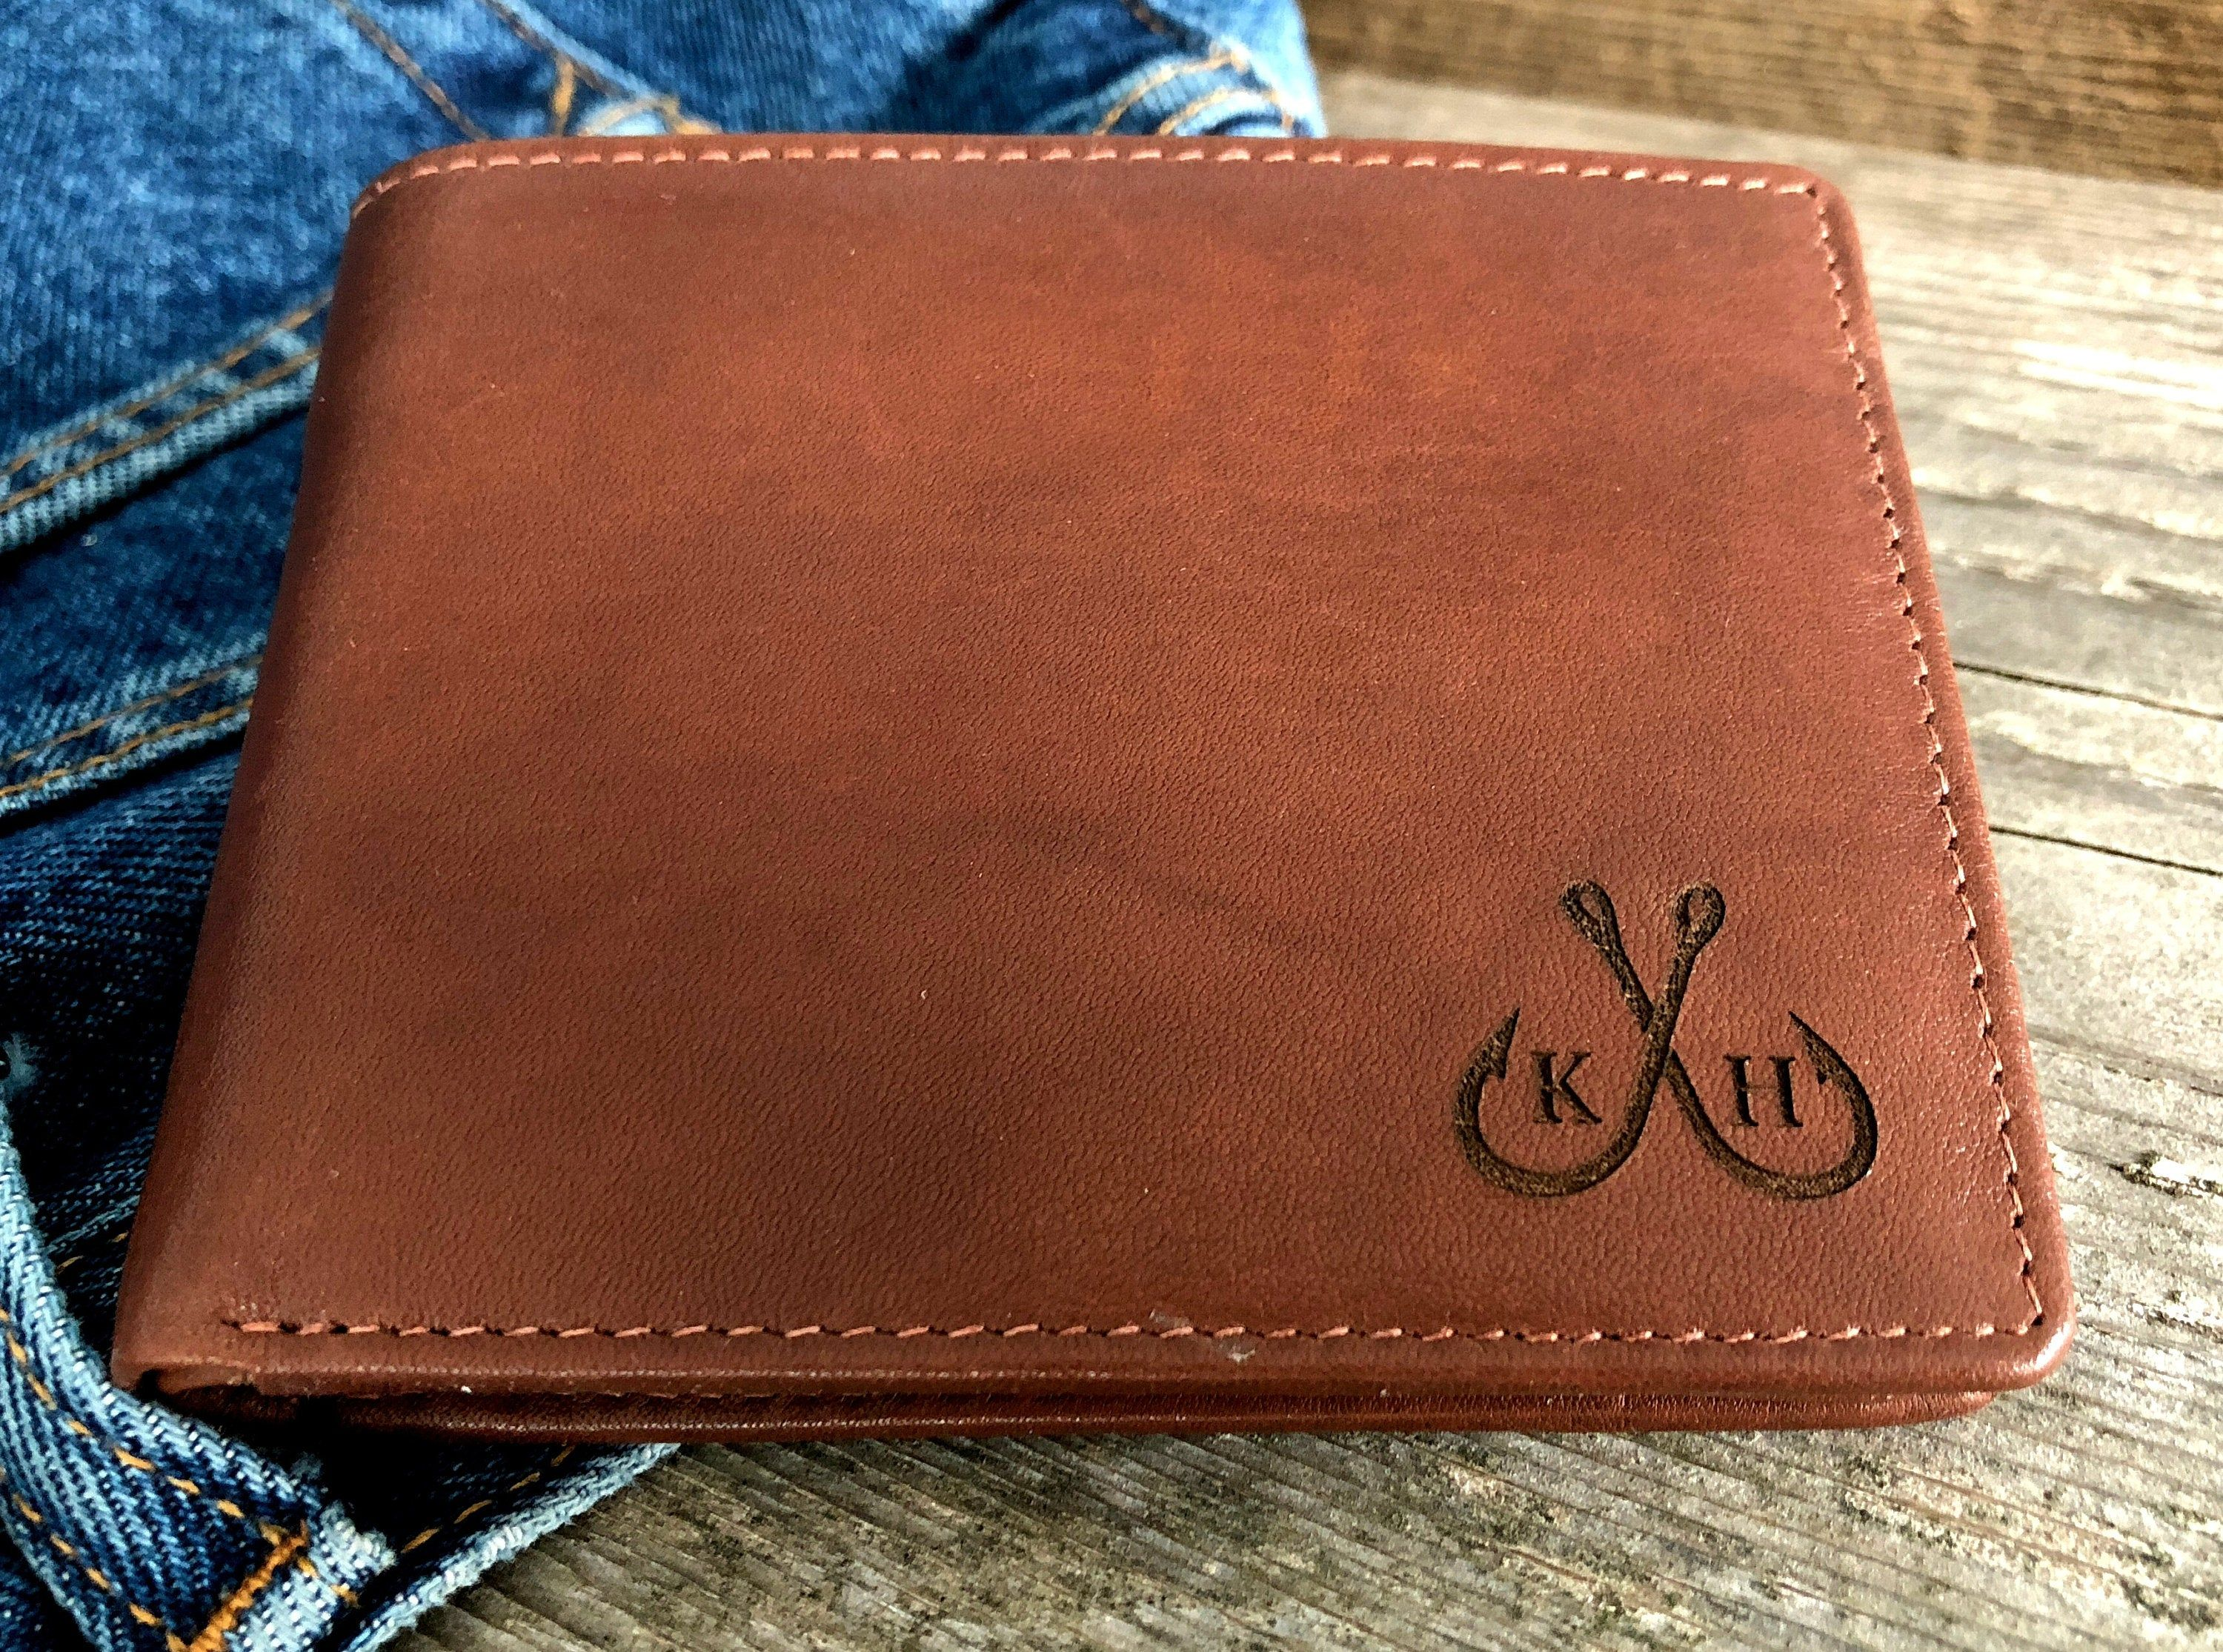 Personalized  Coin Wallet,Personalized Wallet,Leather Wallet,Engraved Wallet Monogram Wallet,Unique Coin Wallet,Leather Coin Wallet,Wood